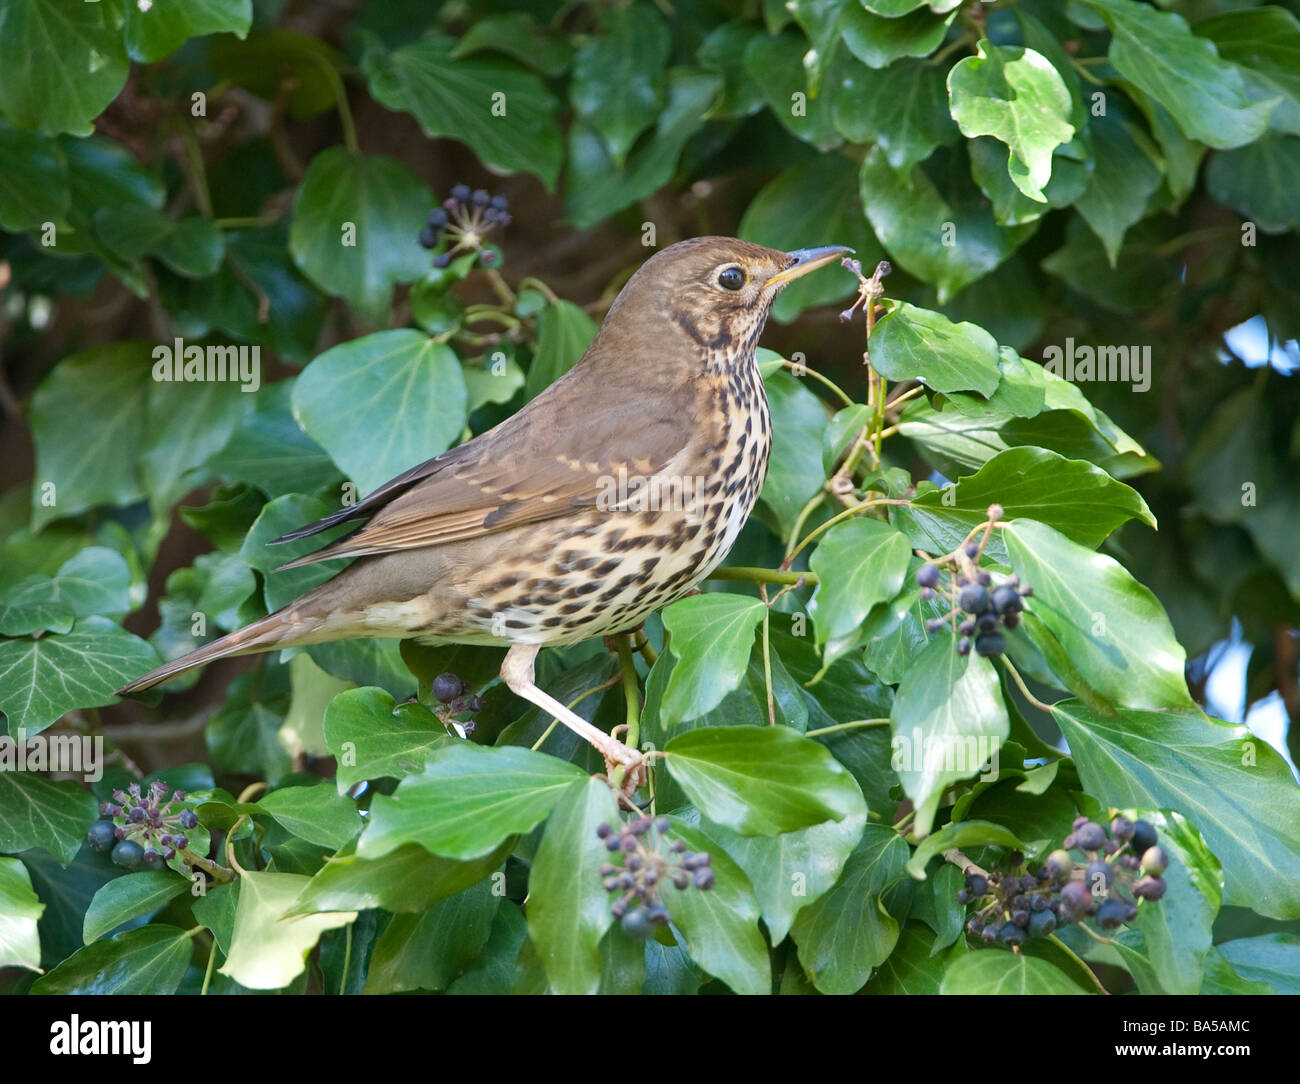 Song thrush Turdus philomelos on ivy Hedera helix Bedfordshire April - Stock Image